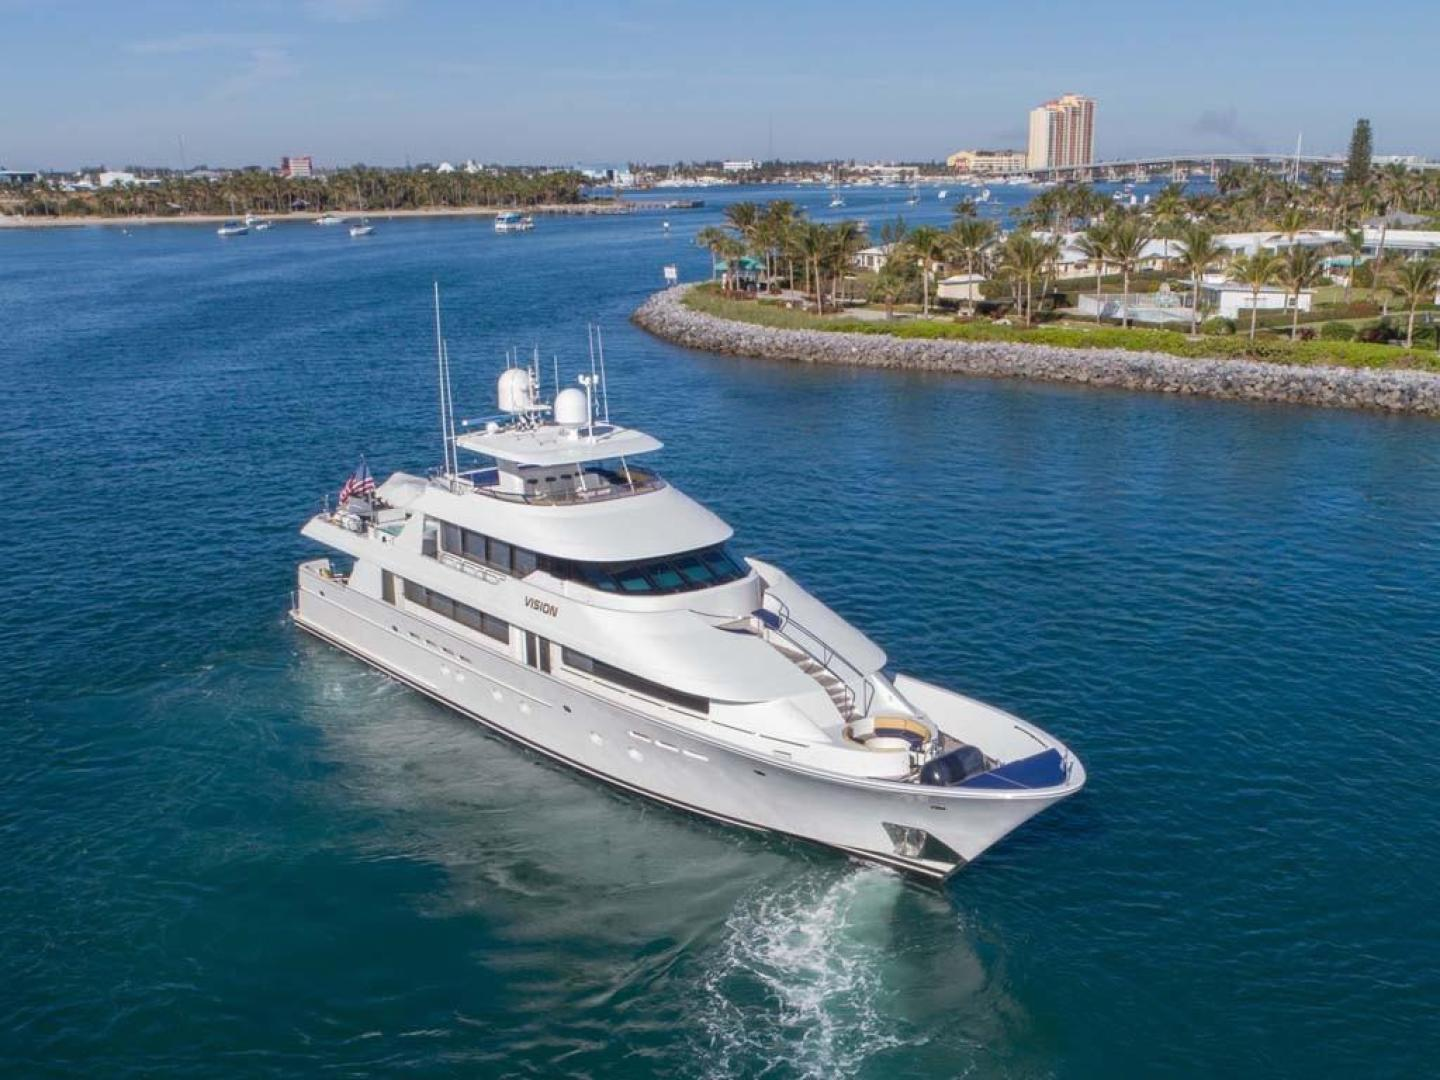 Westport-Tri-Deck-2003-Vision-Jupiter-Florida-United-States-Starboard-Bow-View-370611